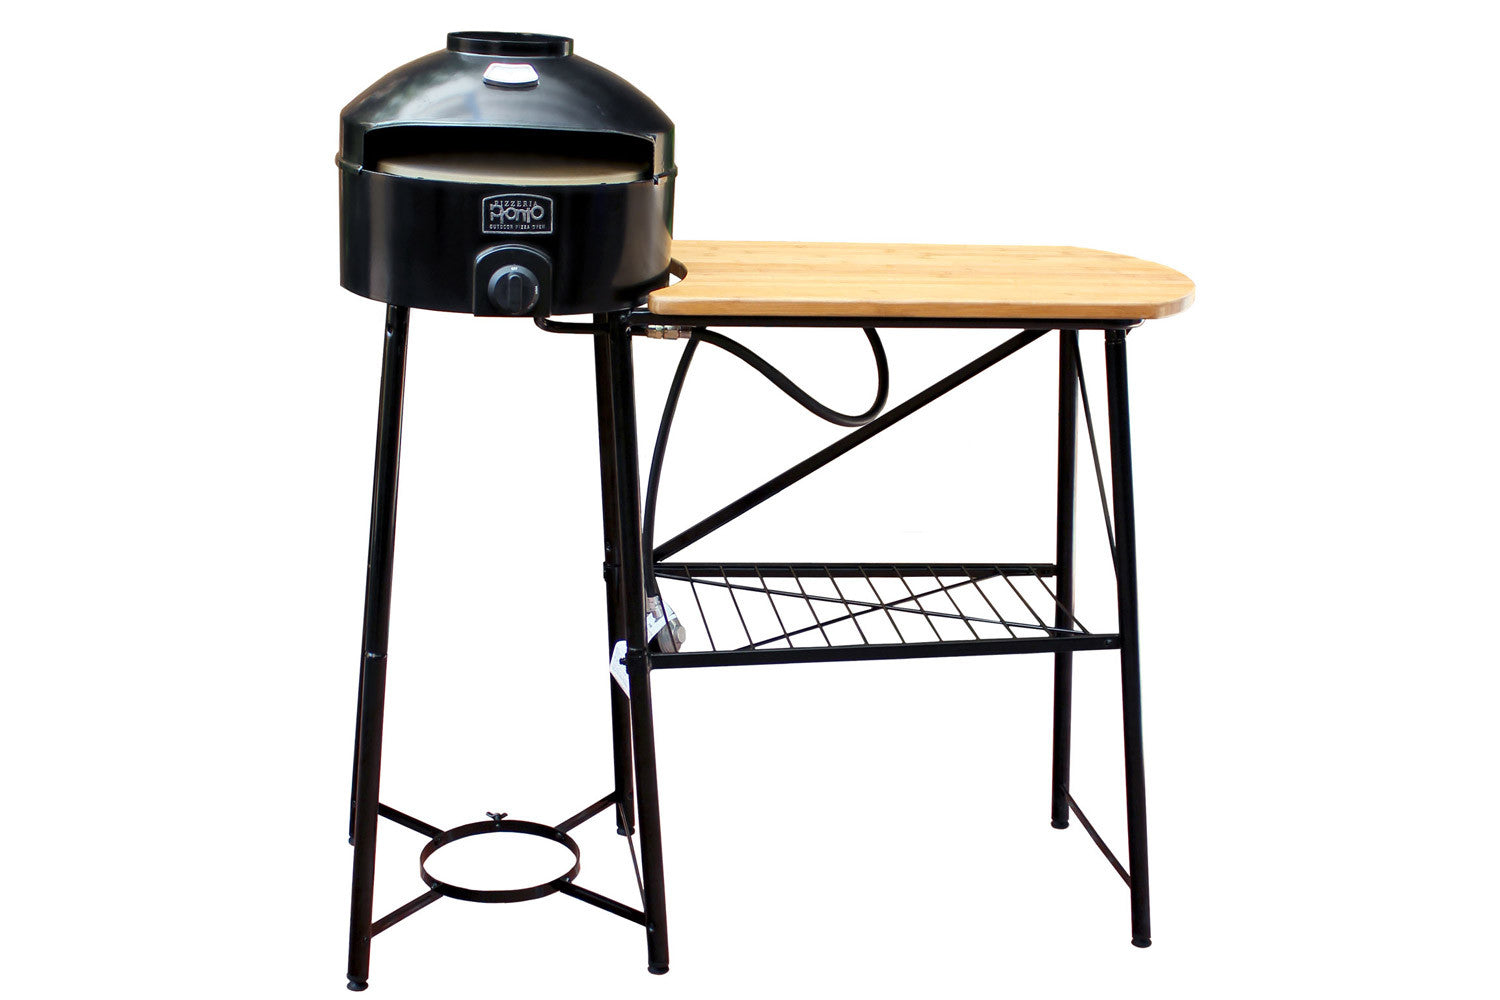 Pizzacraft Stovetop Pizza Oven Outdoor Pizza Oven Side Table Pizzacraft